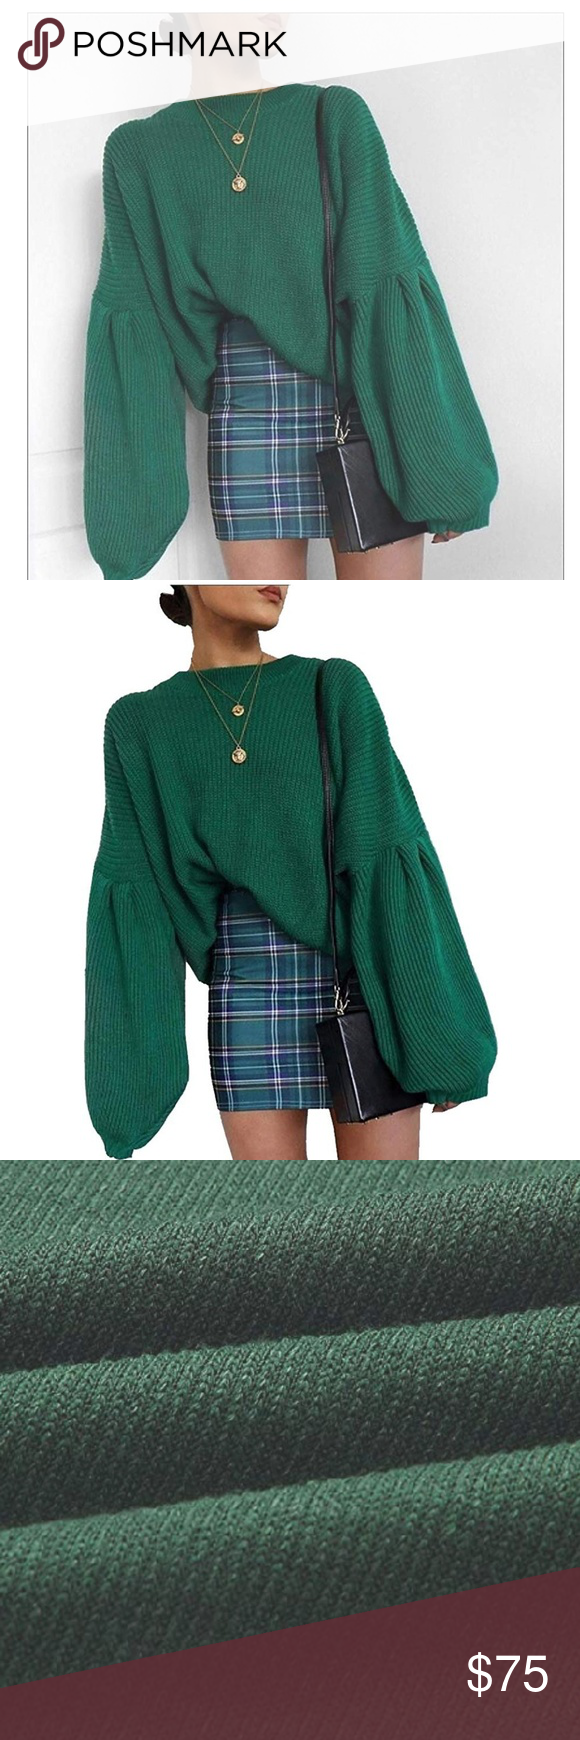 6cb987834 JULIAN 80s Style Chunky Sweater Available in sizes XS through 3X. S ...